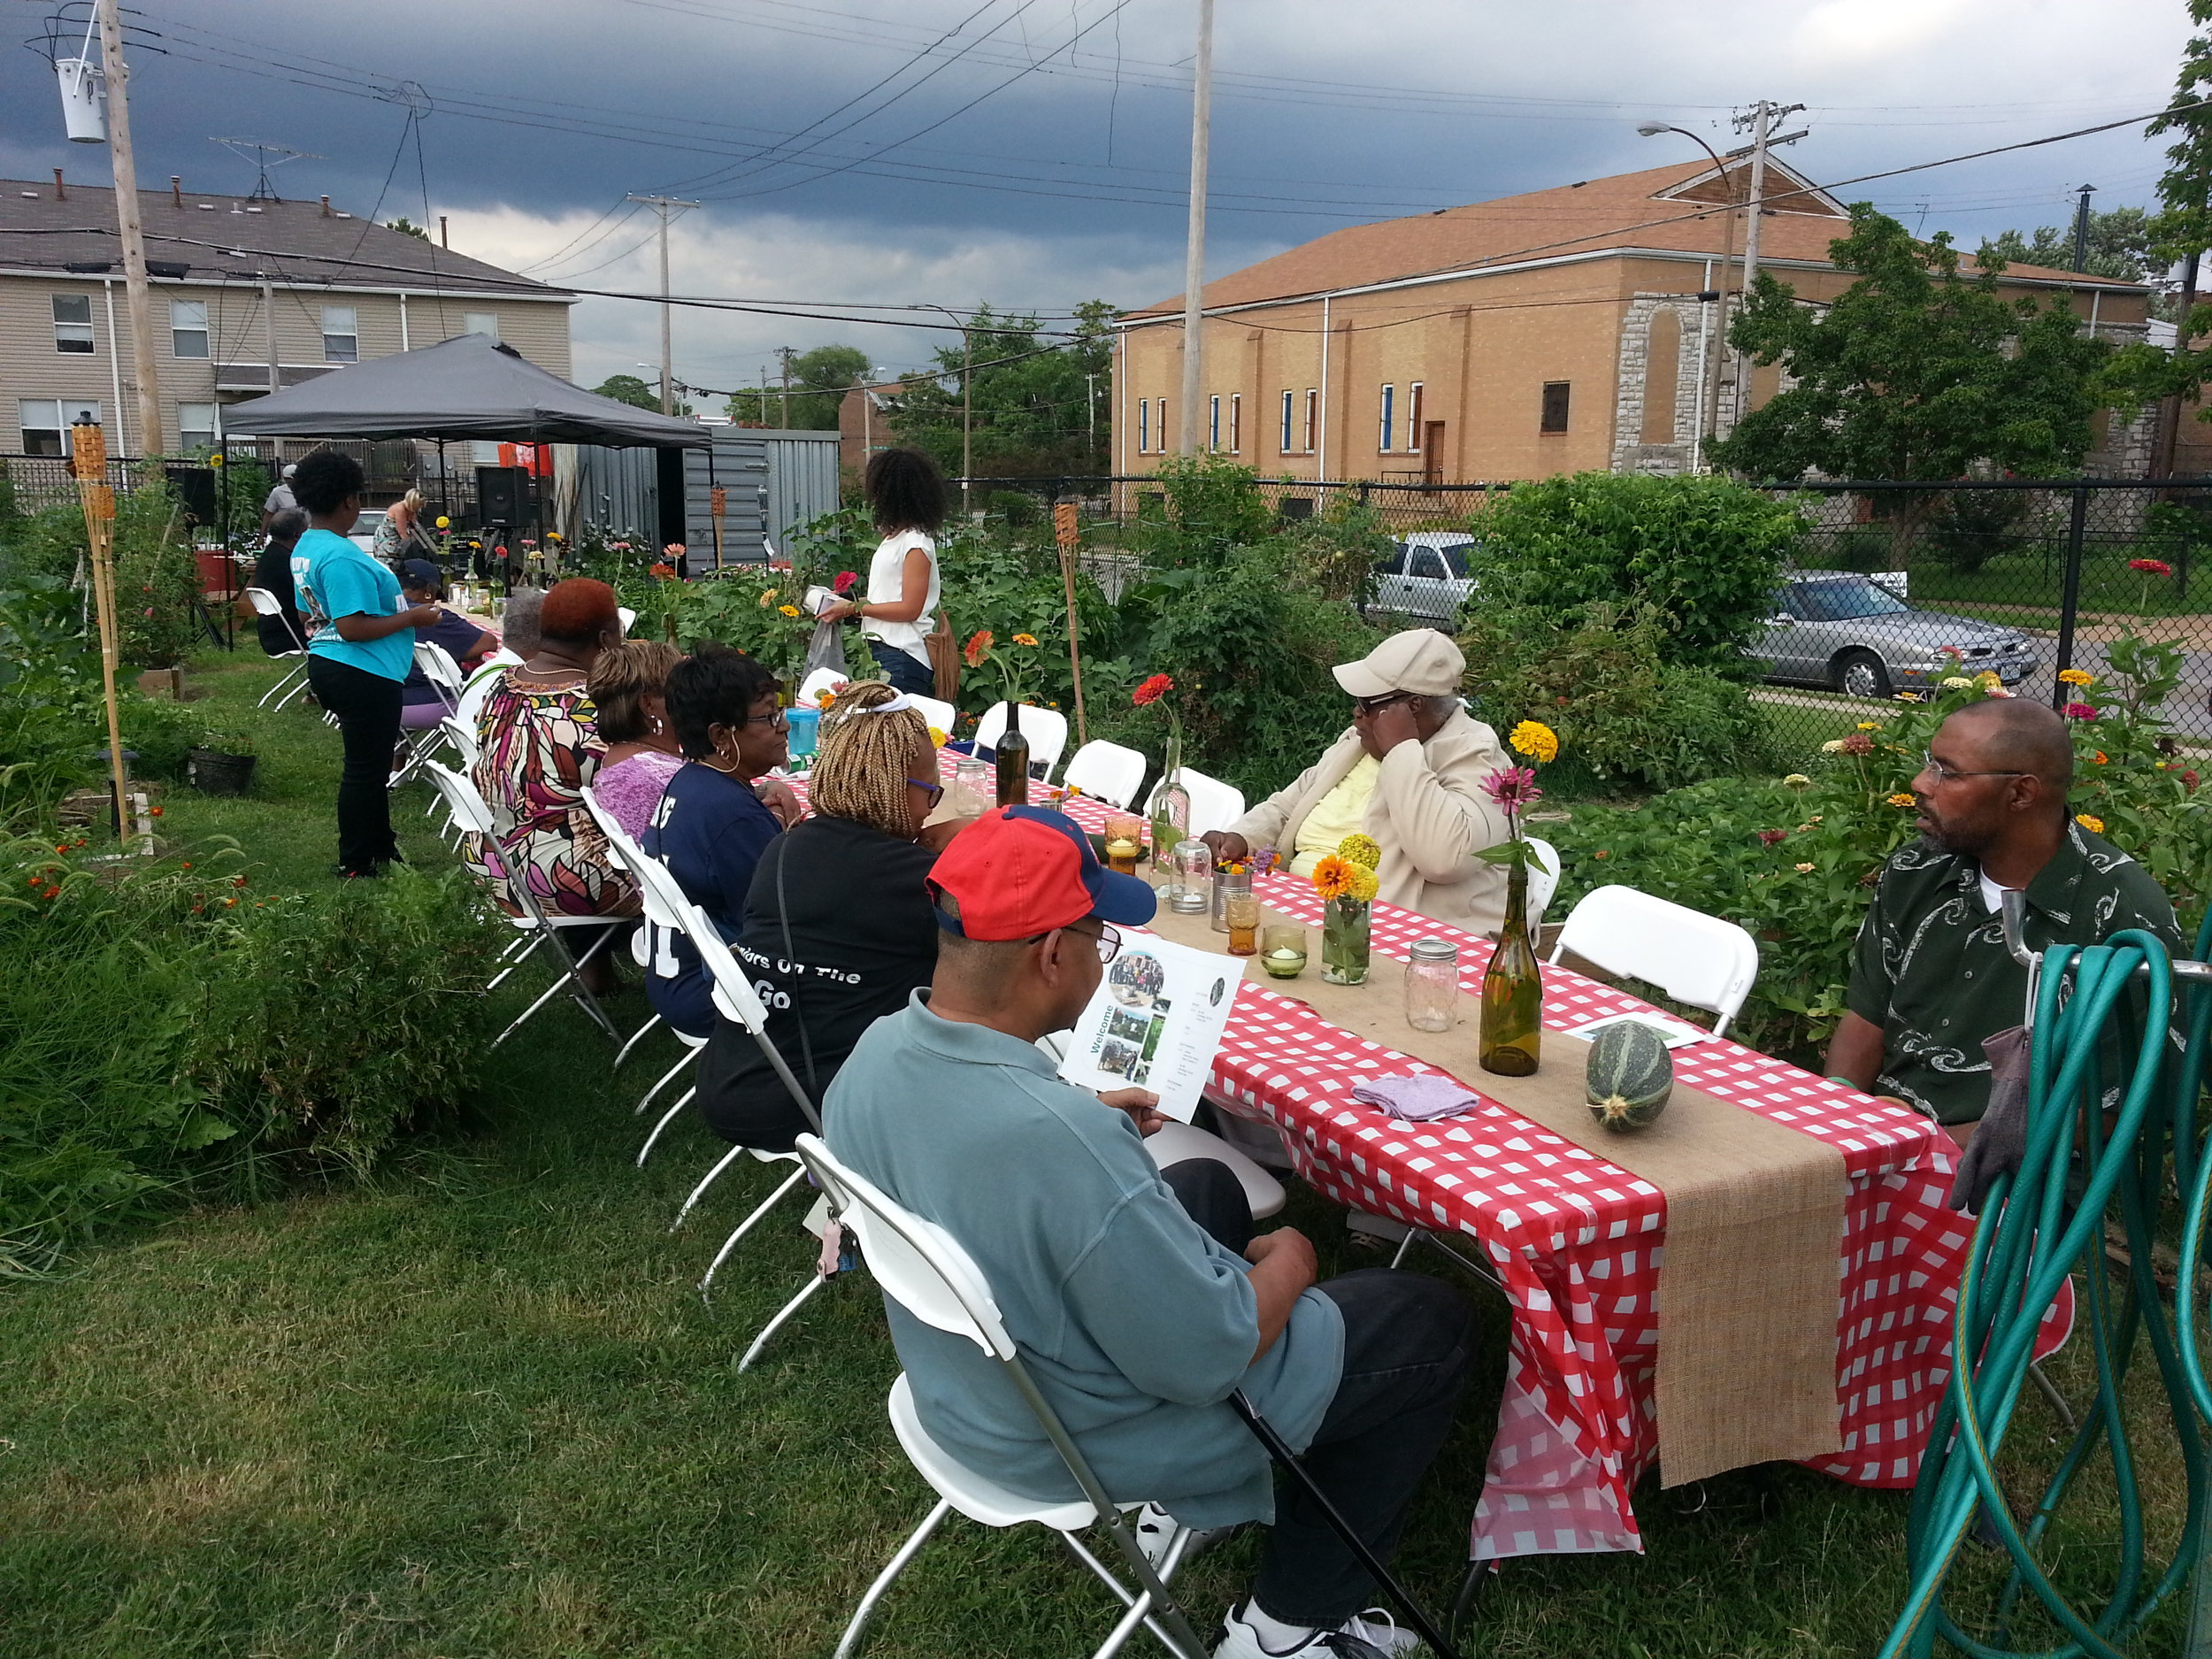 Community Renewal and Development, Inc. Annual Community Dinner at Fresh Starts Community Garden in the Jeff-Vander-Lou neighborhood